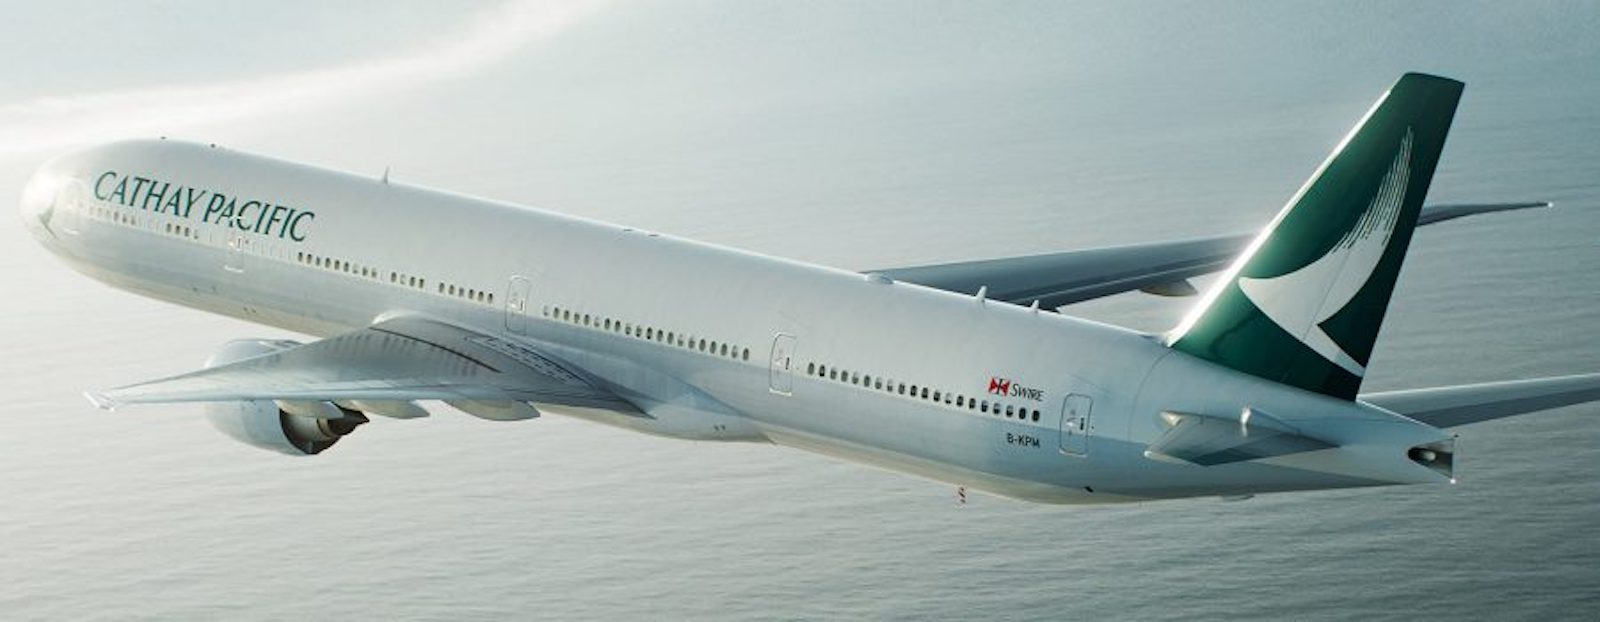 Cathay Pacific plane